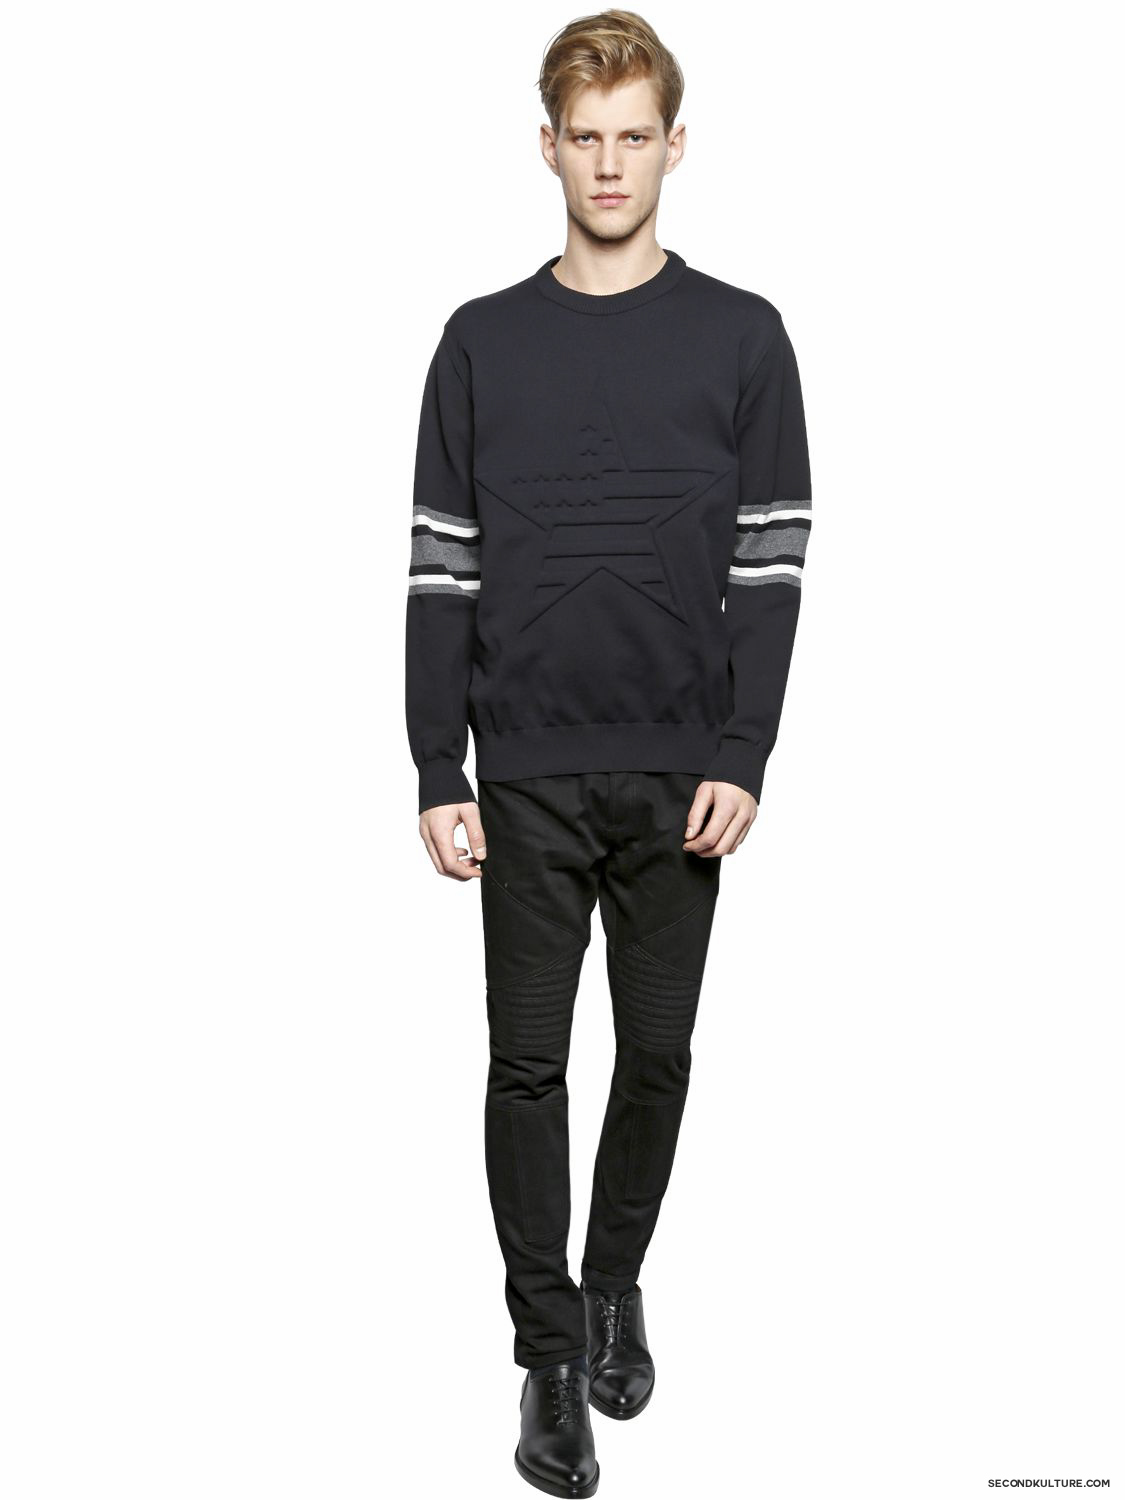 Givenchy-American-Flag-Star-Embossed-Striped-Sleeve-Print-Sweater-Fall-Winter-2015-2